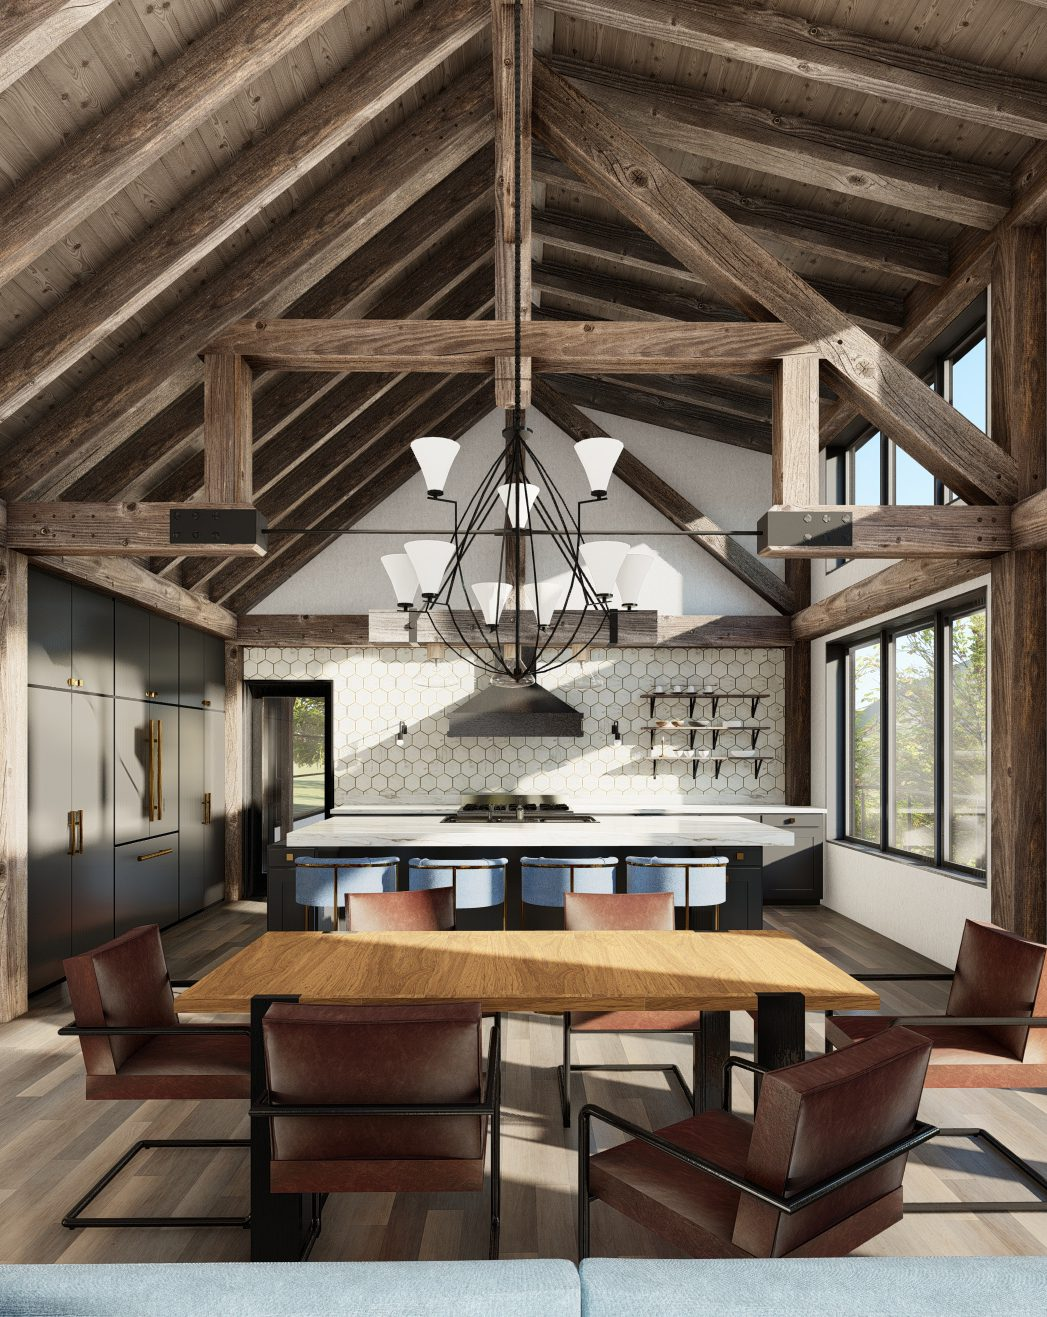 Normerica Timber Frames, House Plan, The Redstone 3920, Interior, Dining Room, Kitchen, Open Concept, Cathedral Ceiling